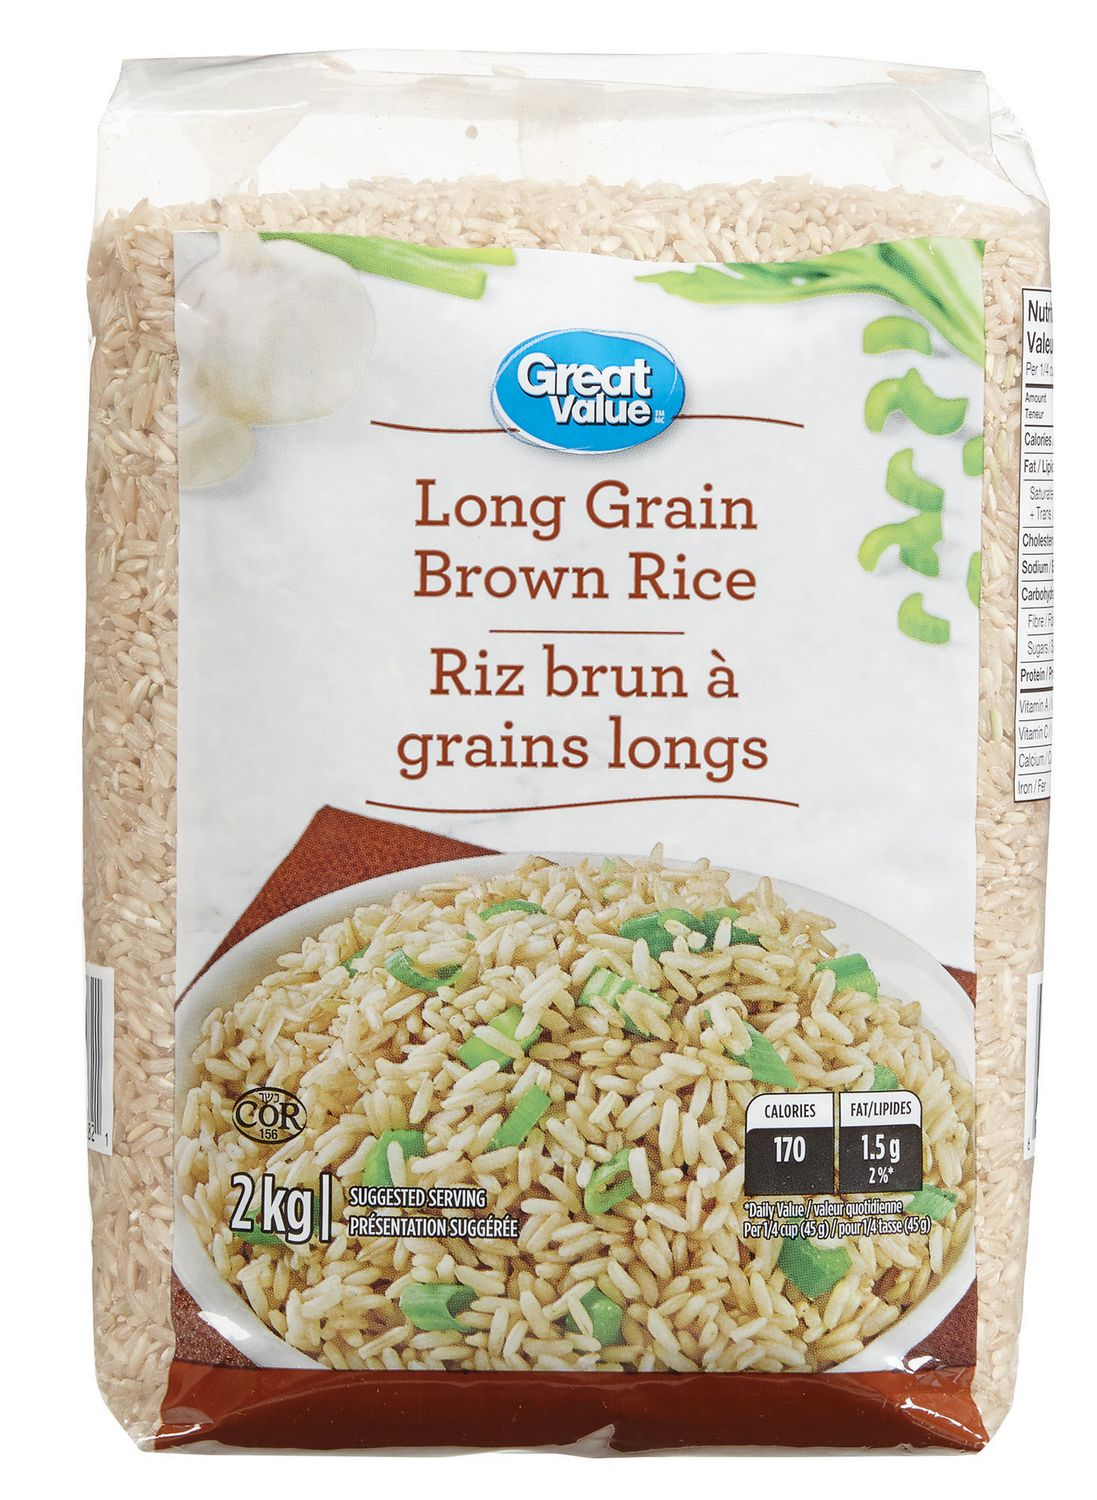 How many calories in cup of brown rice pasta